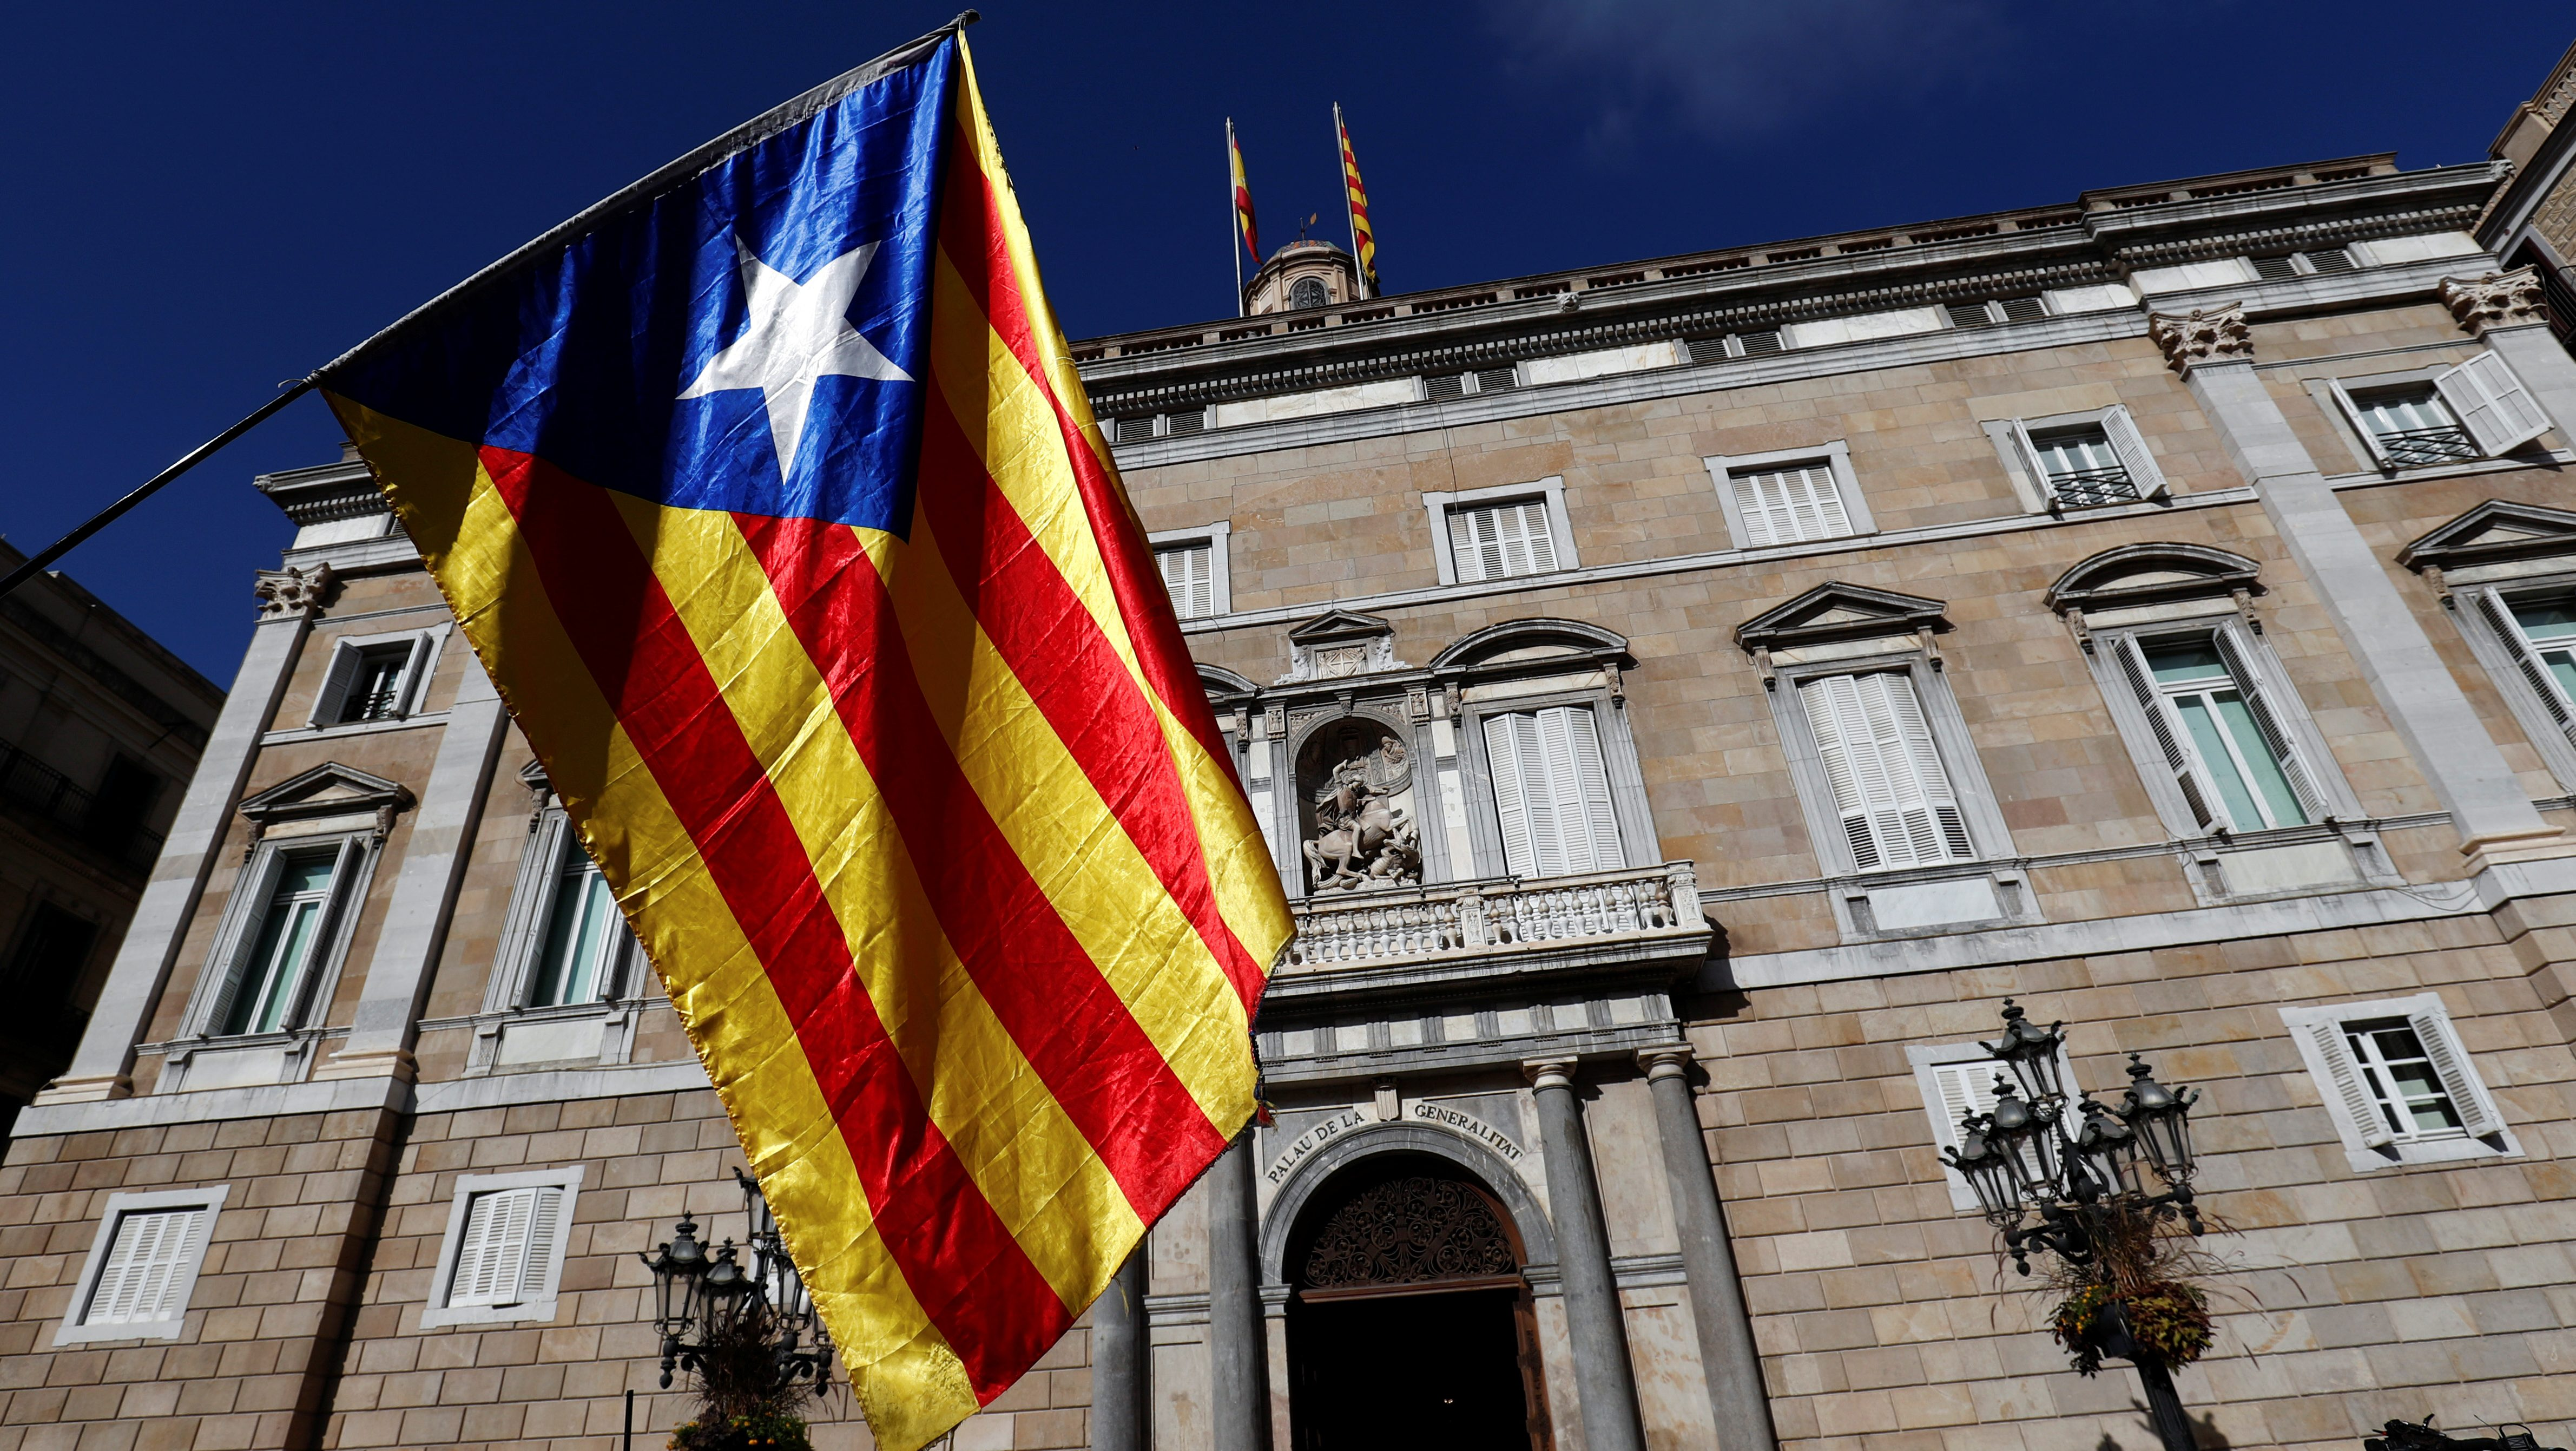 A Catalan separatist flag is waved in front of the Generalitat Palace, the Catalan regional government headquarters in Barcelona